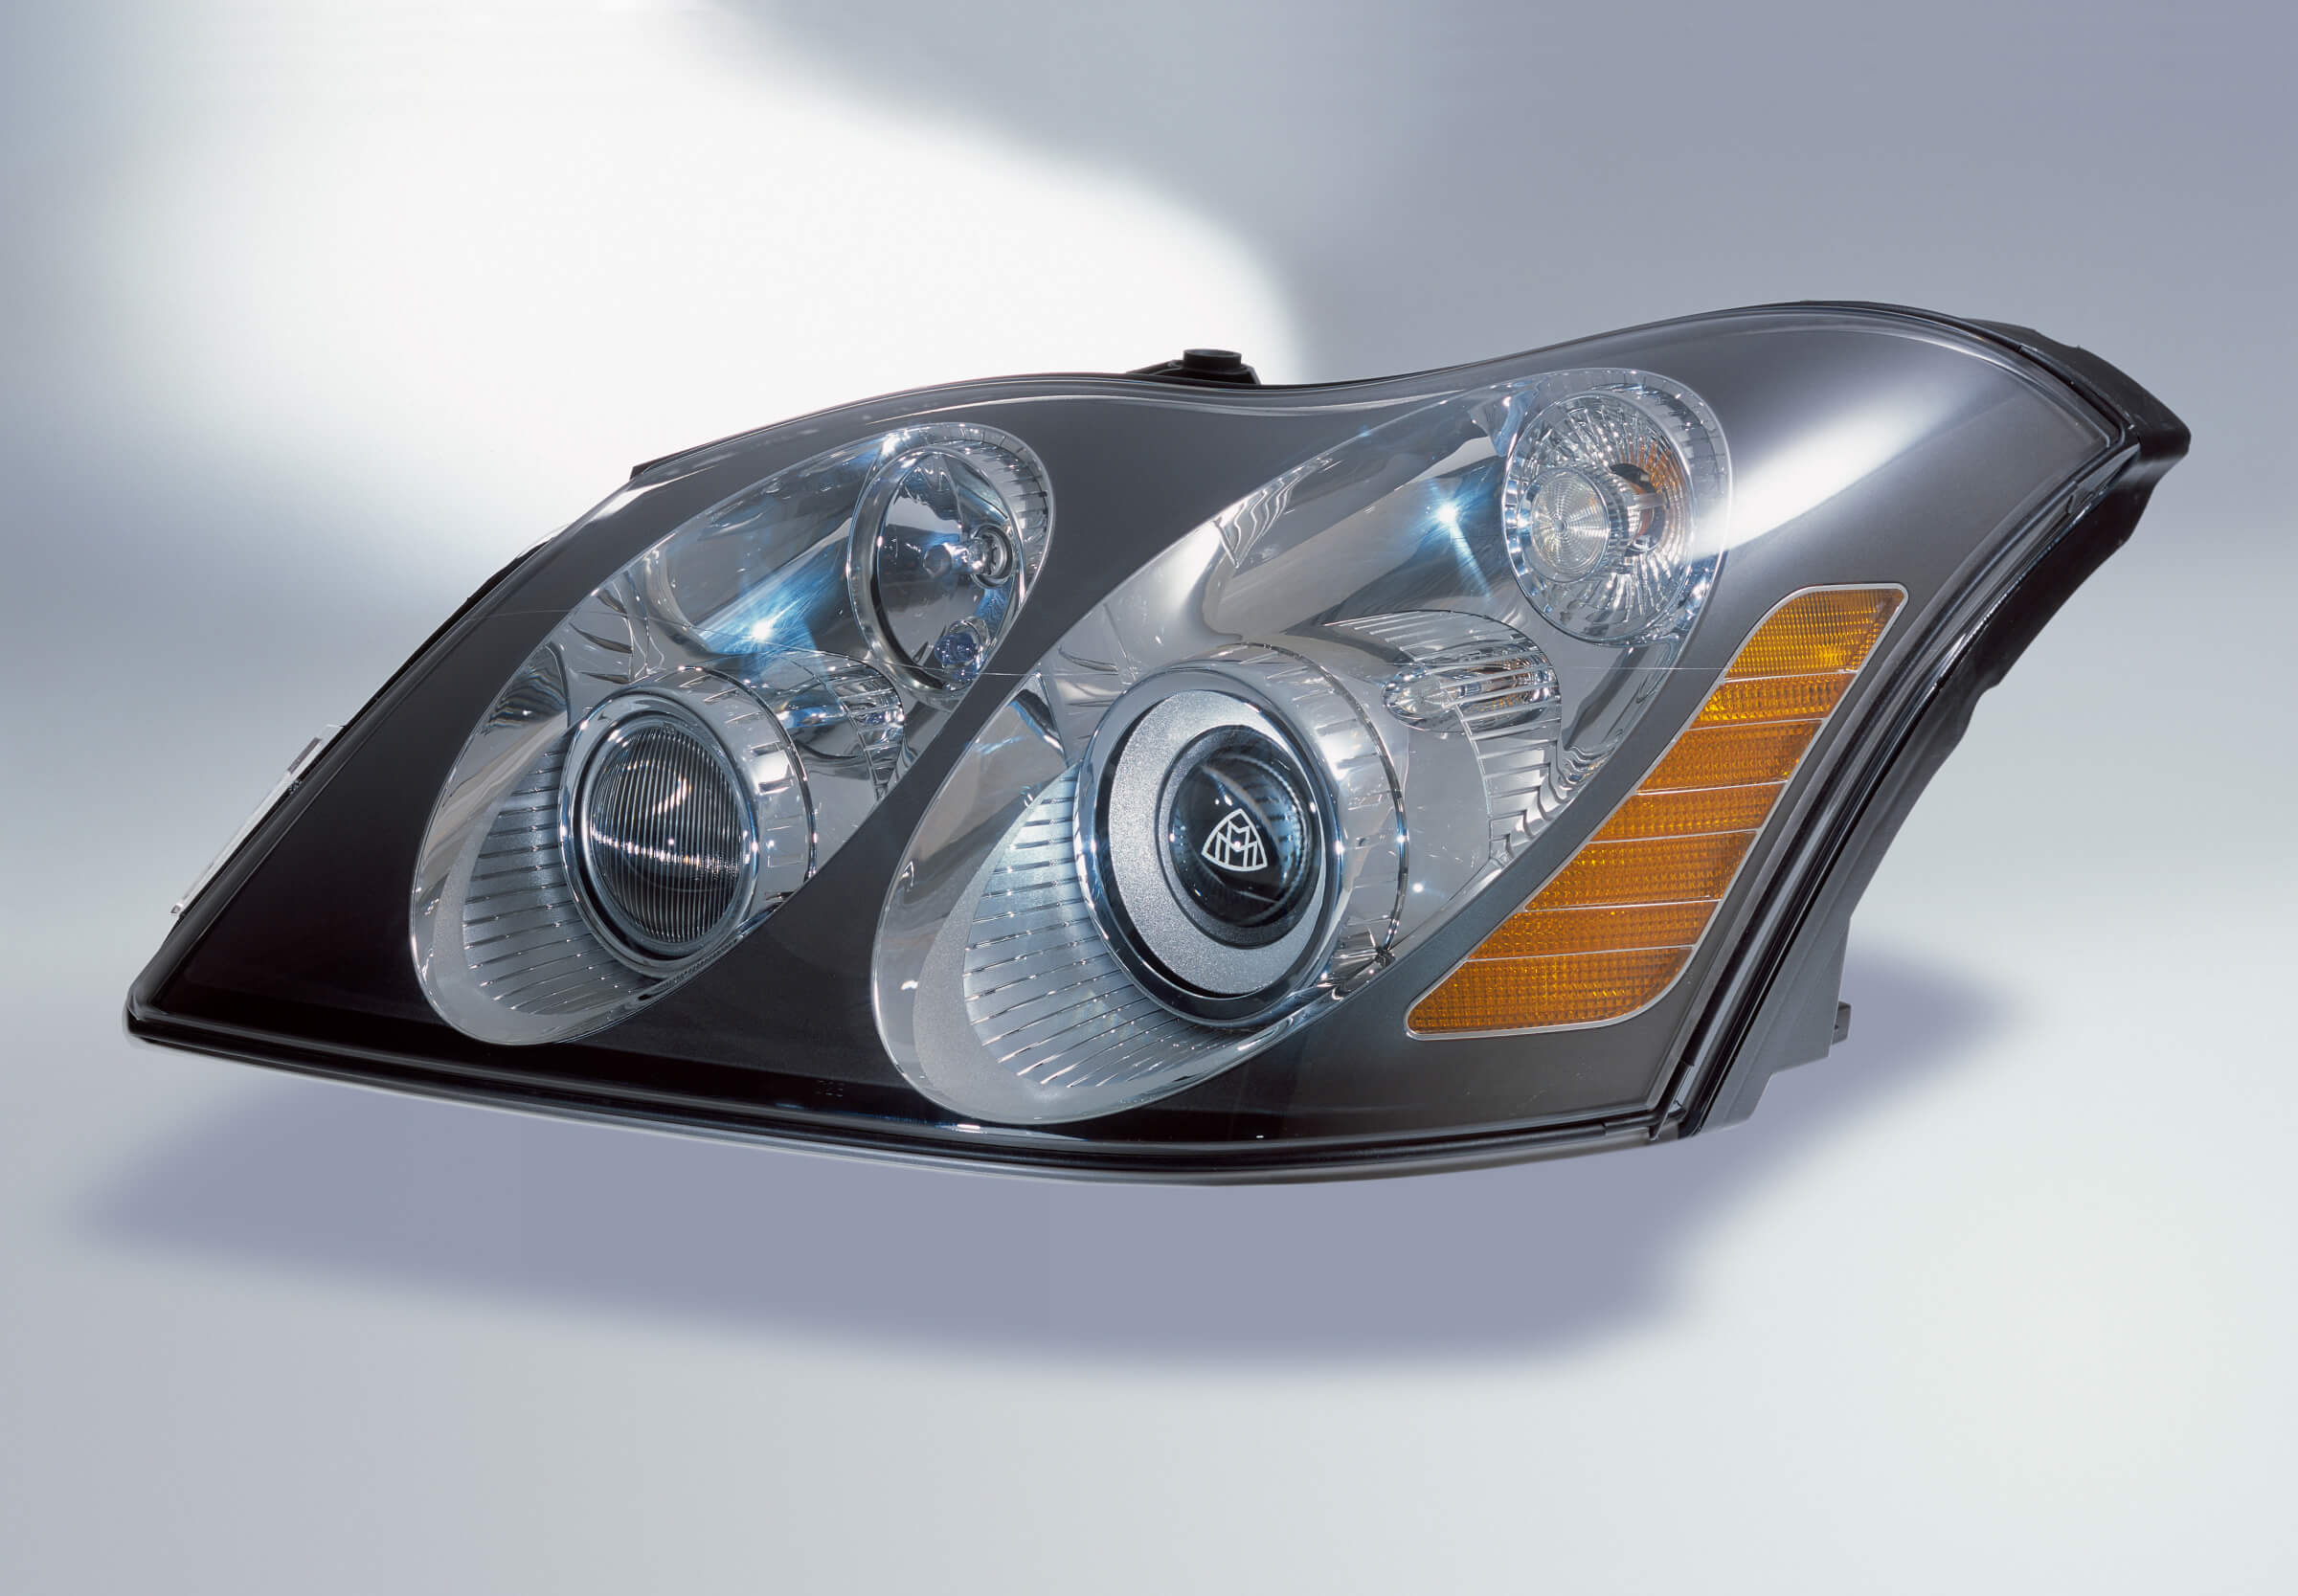 headlight restoration service price,  how to make plexiglass clear again,  sanding headlights